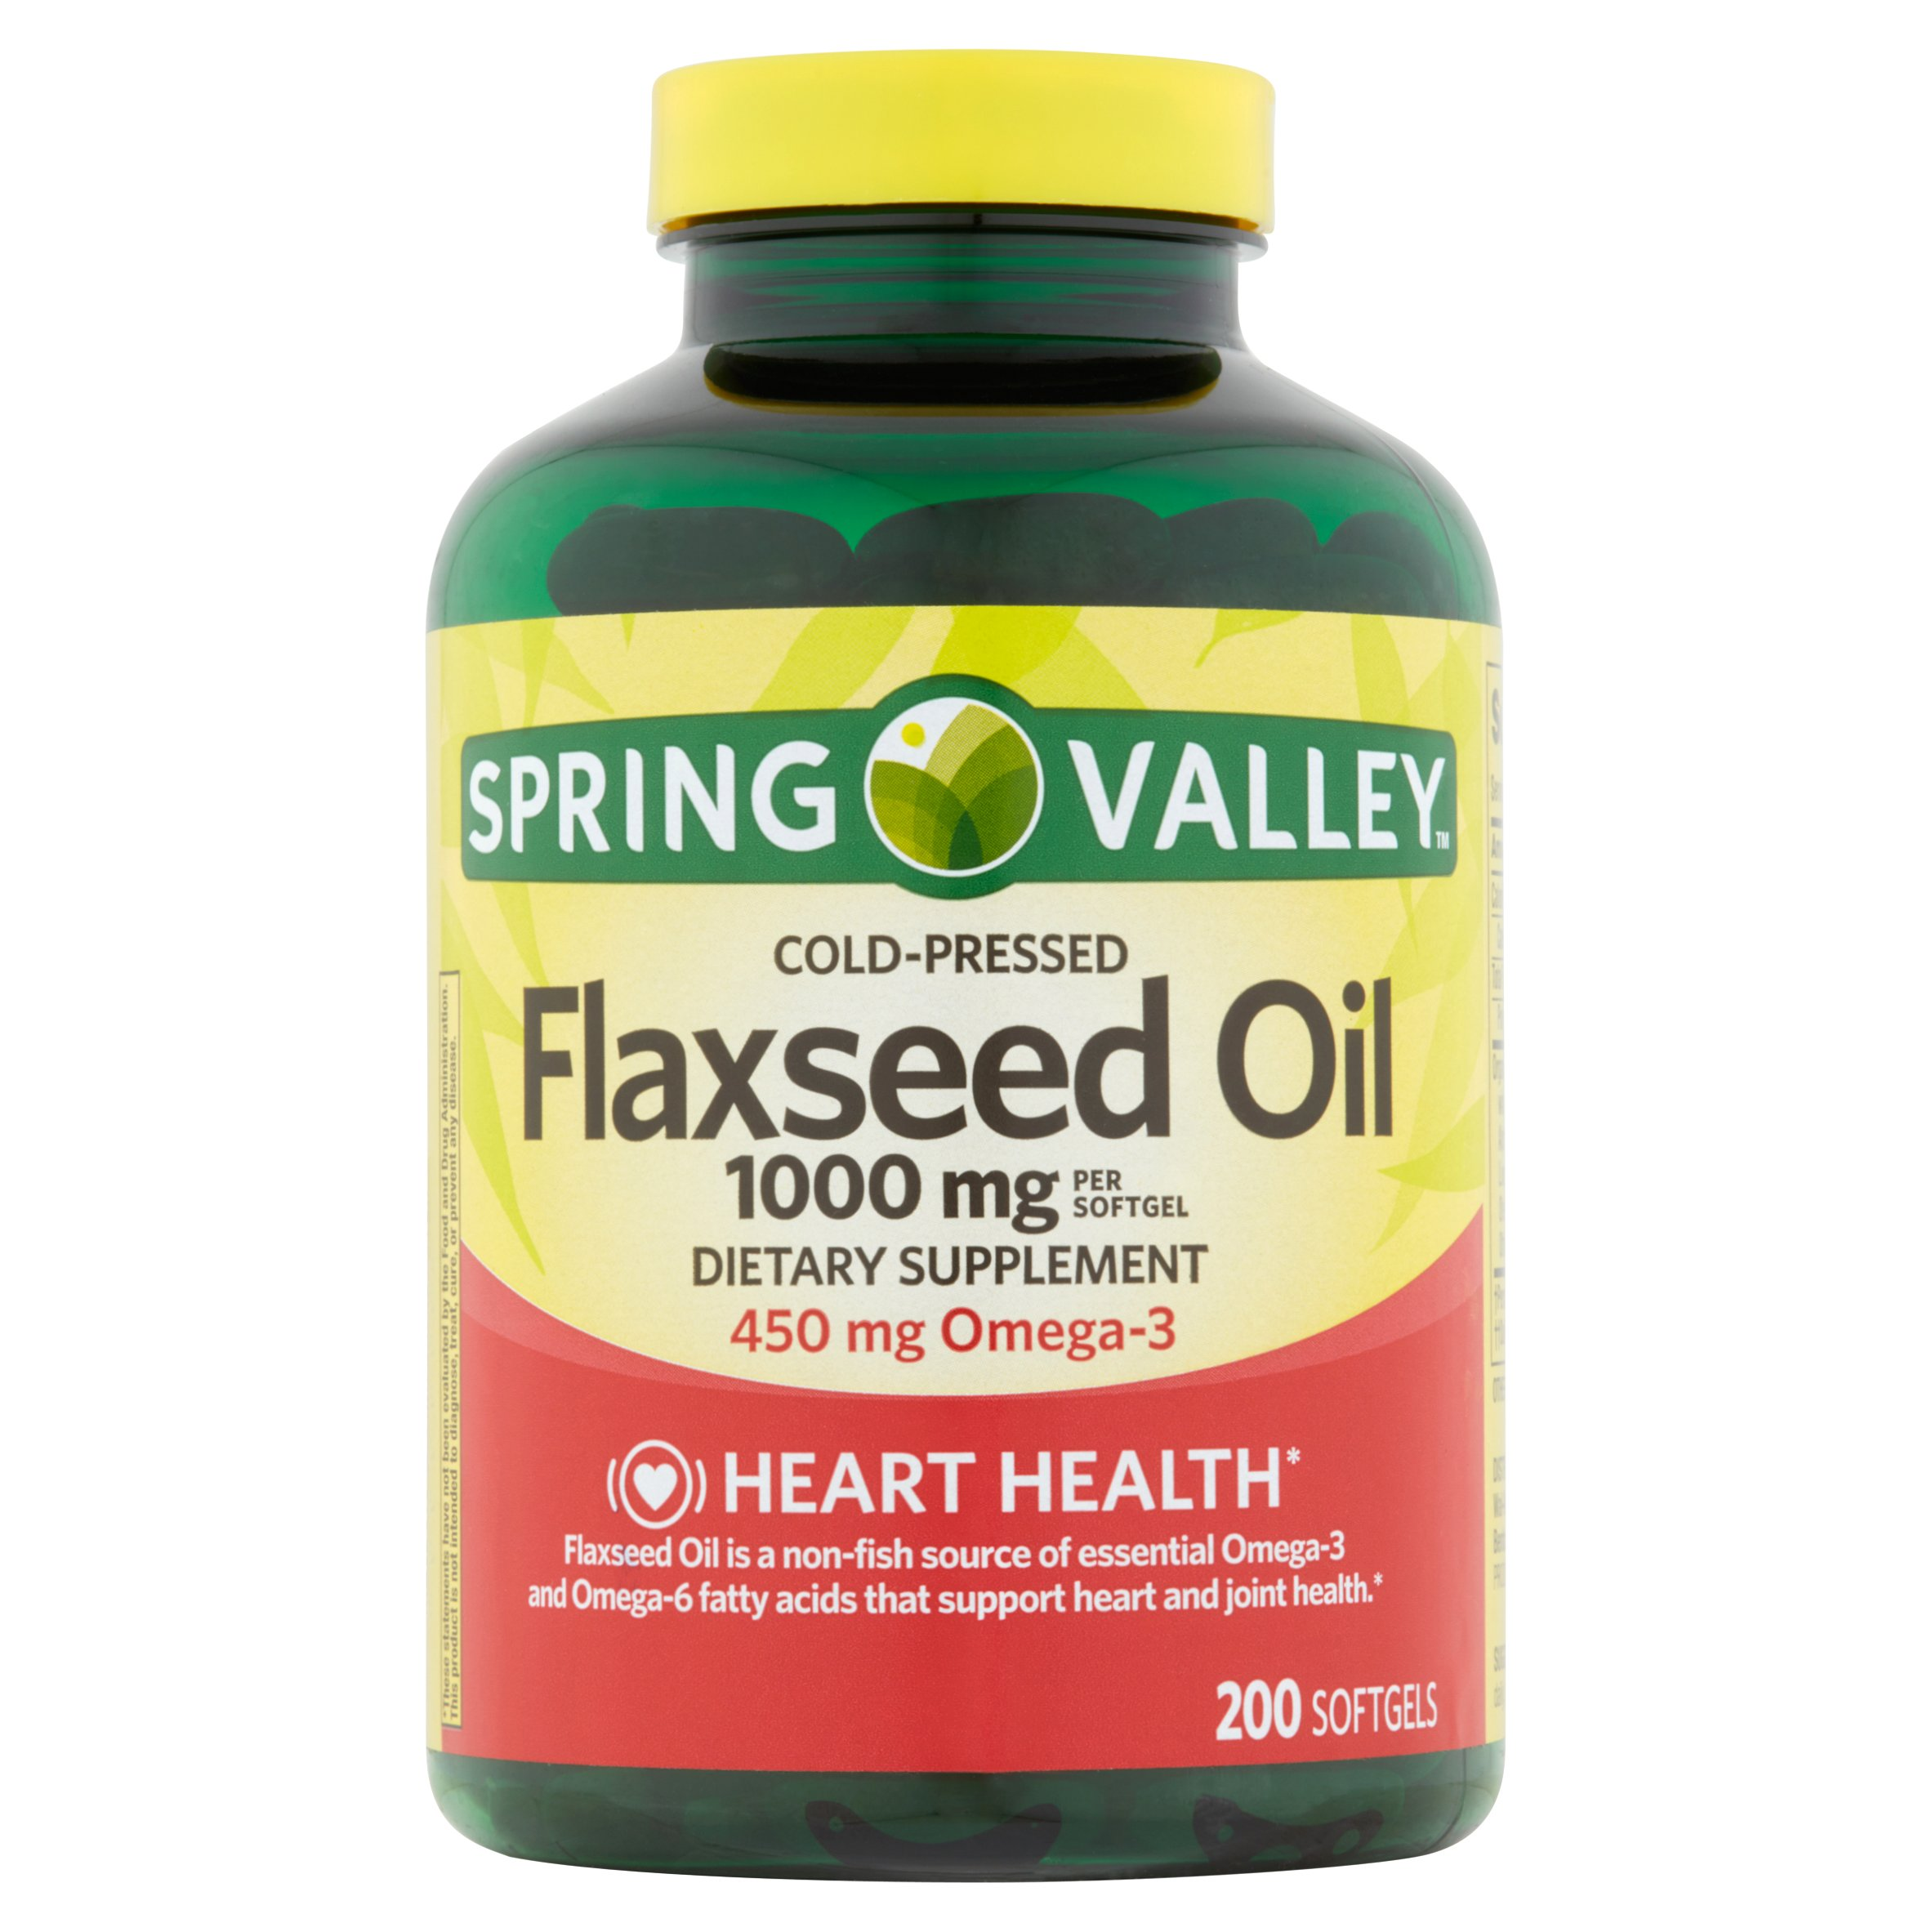 Spring Valley Cold-Pressed Flaxseed Oil Softgels, 1000mg, 200 Ct